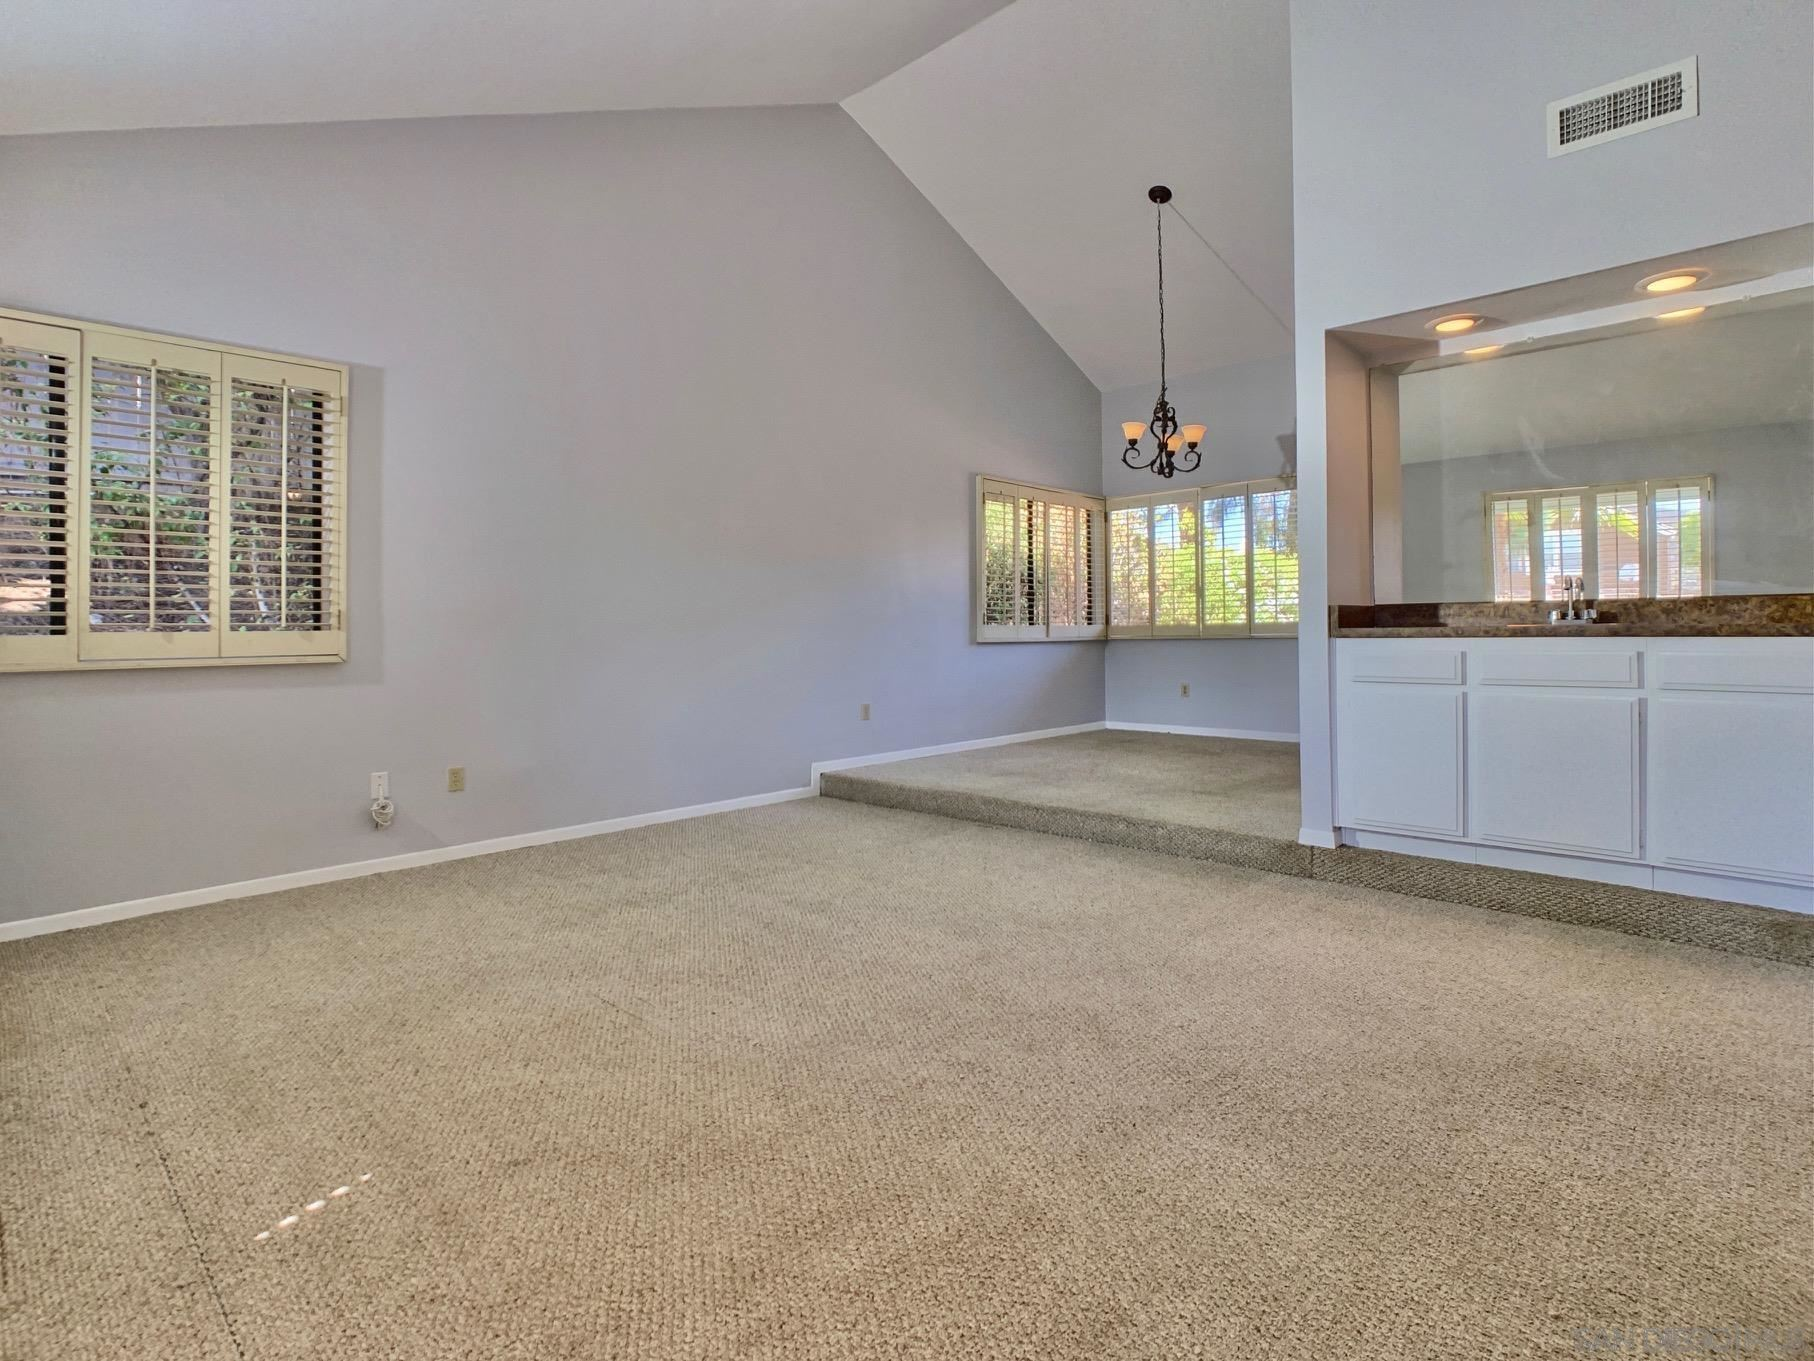 Photo of 9834 IVY ST, Spring Valley, CA 91977 (MLS # 210029402)